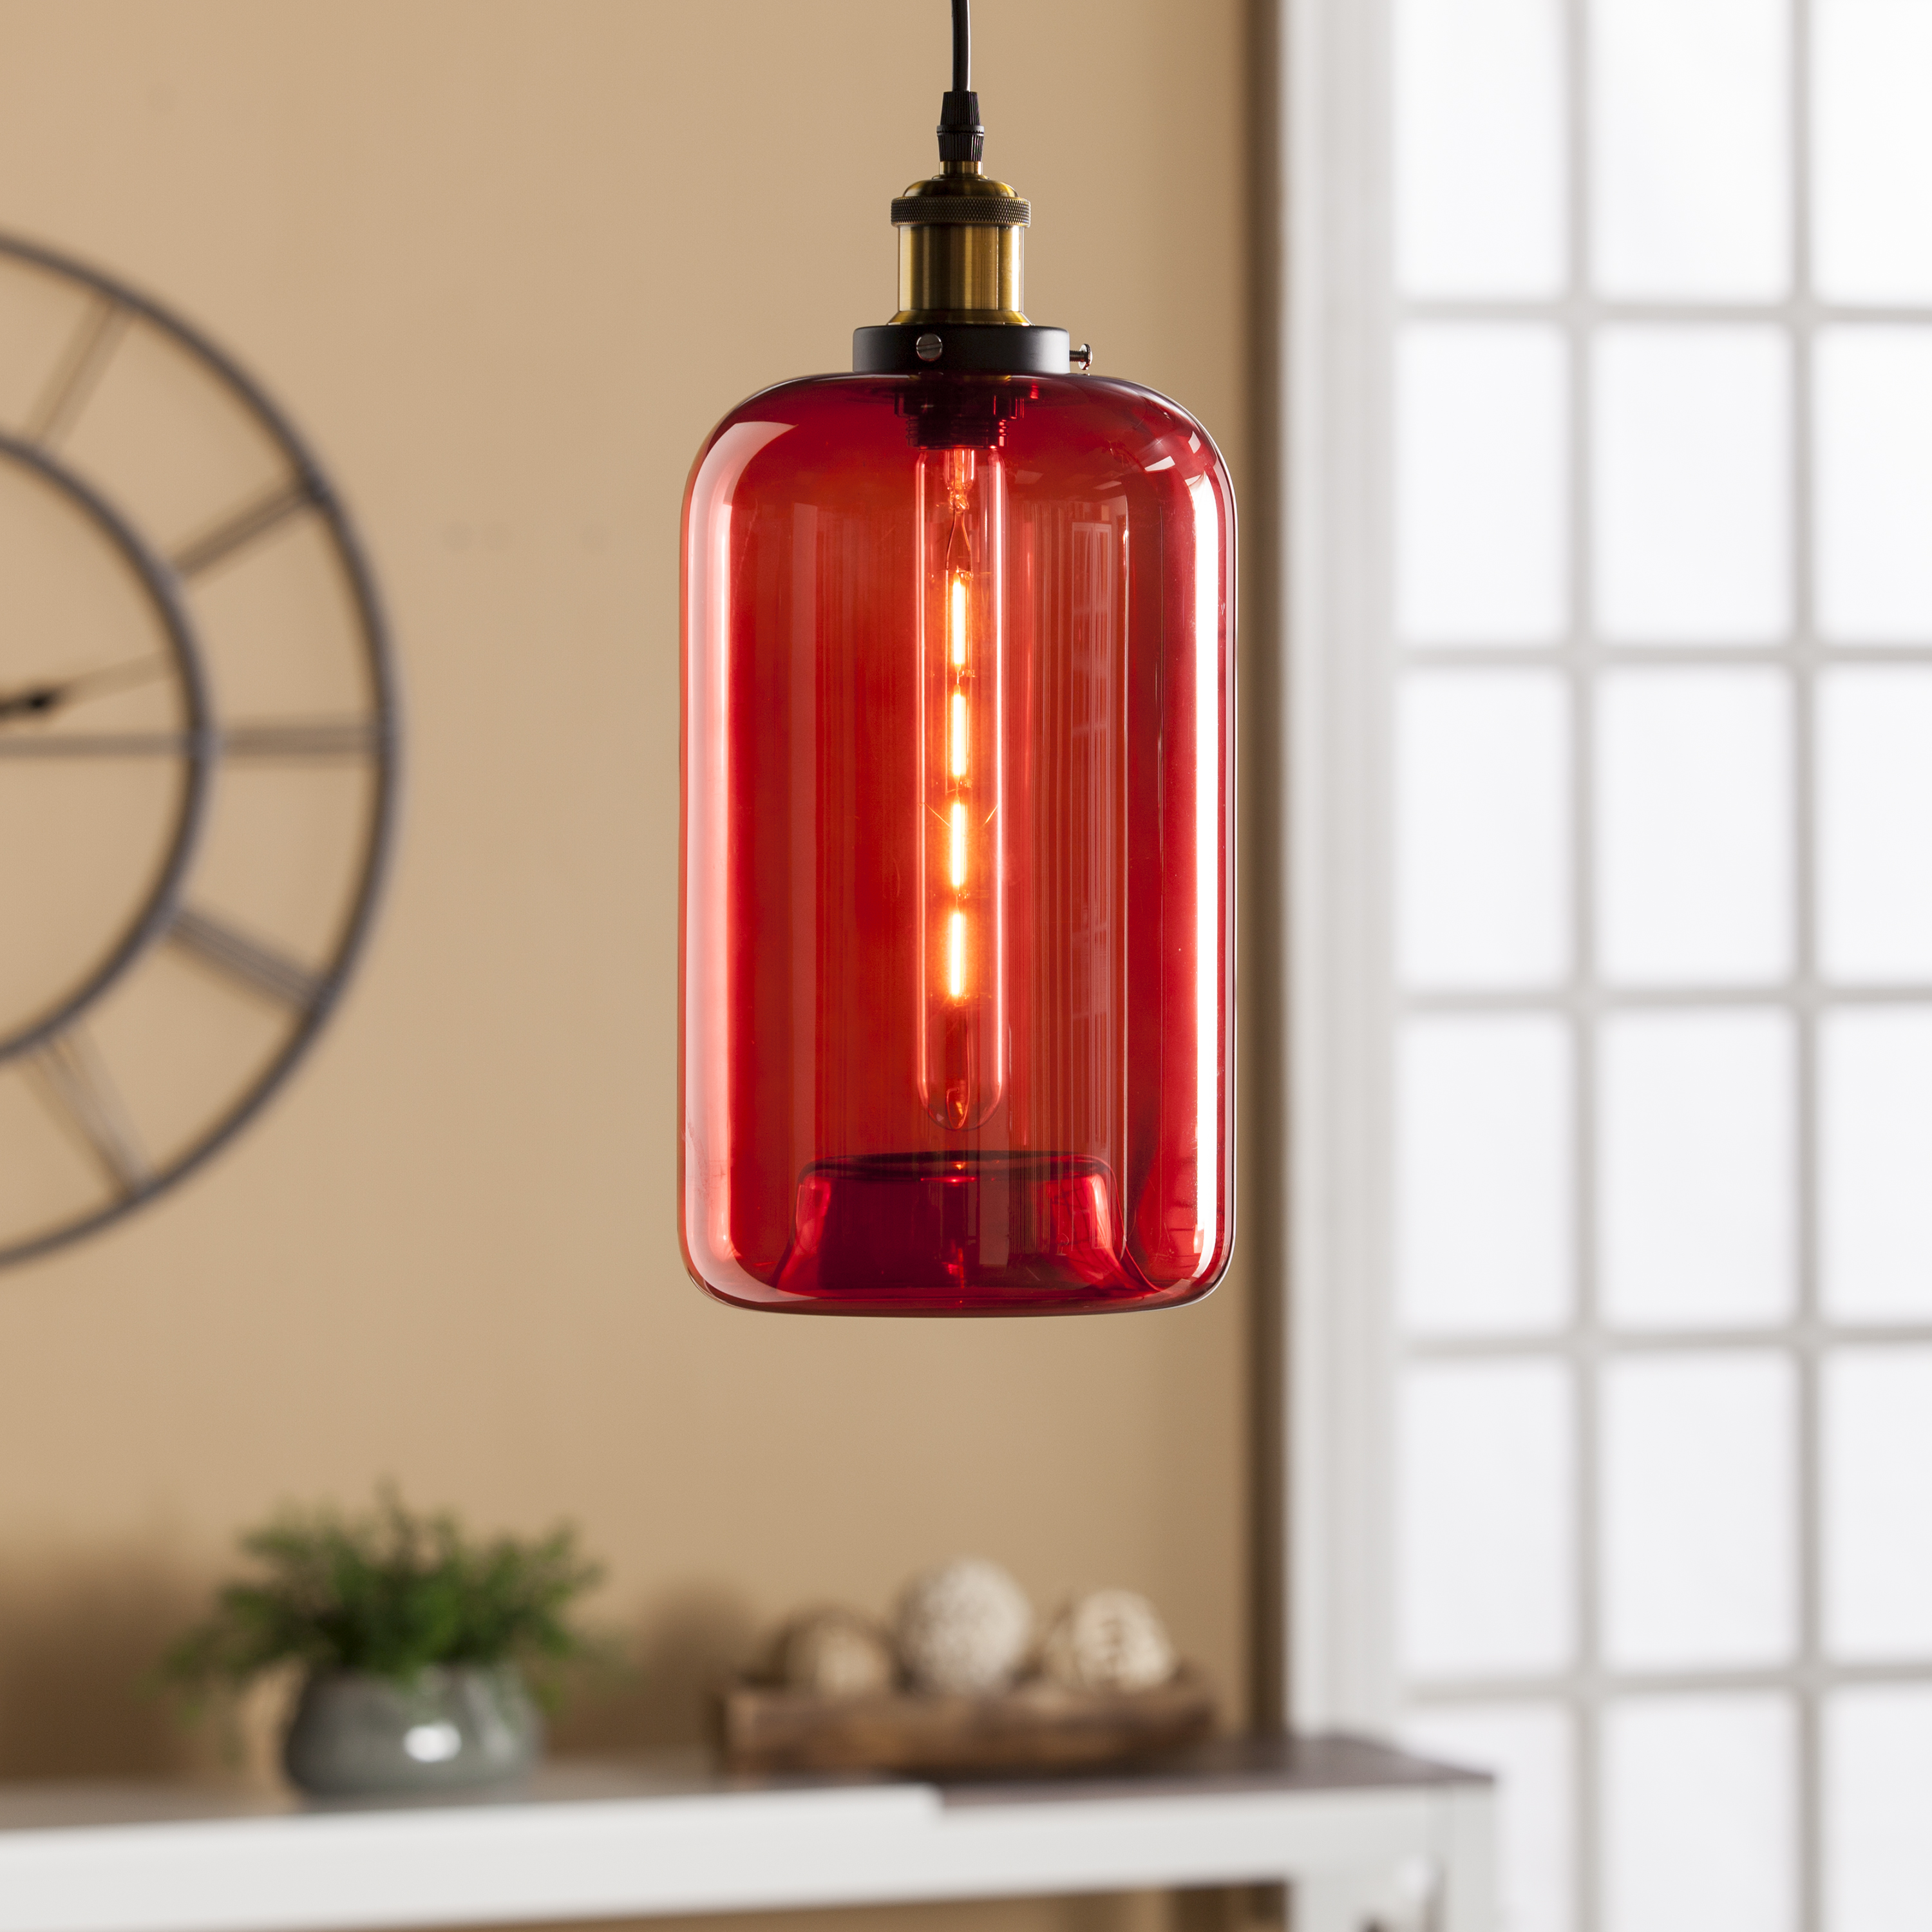 Coraline colored glass mini pendant lamp red southern coraline colored glass mini pendant lamp red aloadofball Choice Image